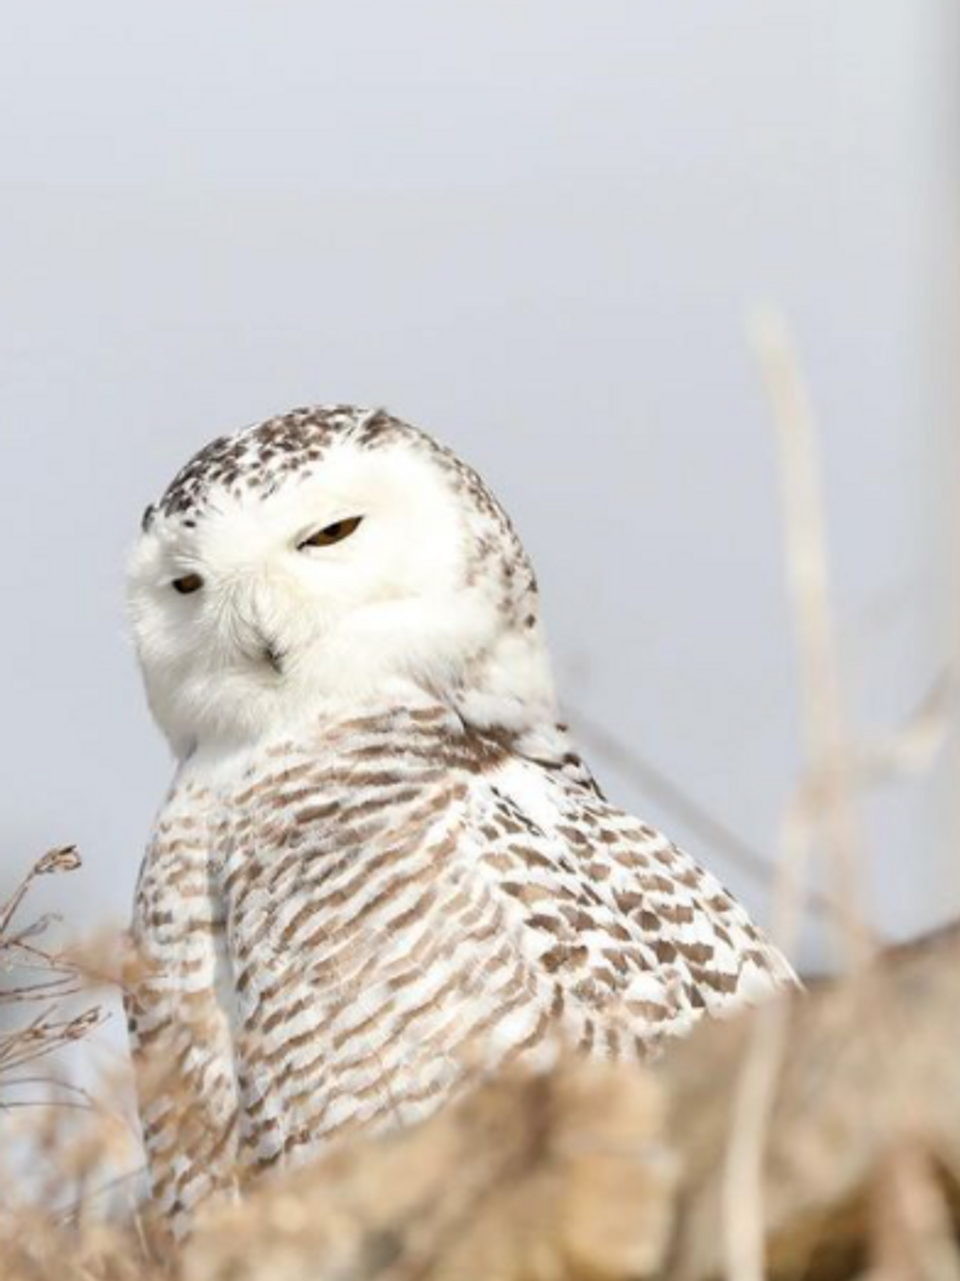 Awestruck Majestic Snowy Owl Watches Over Guests At Pennsylvania Ski Resort Whp